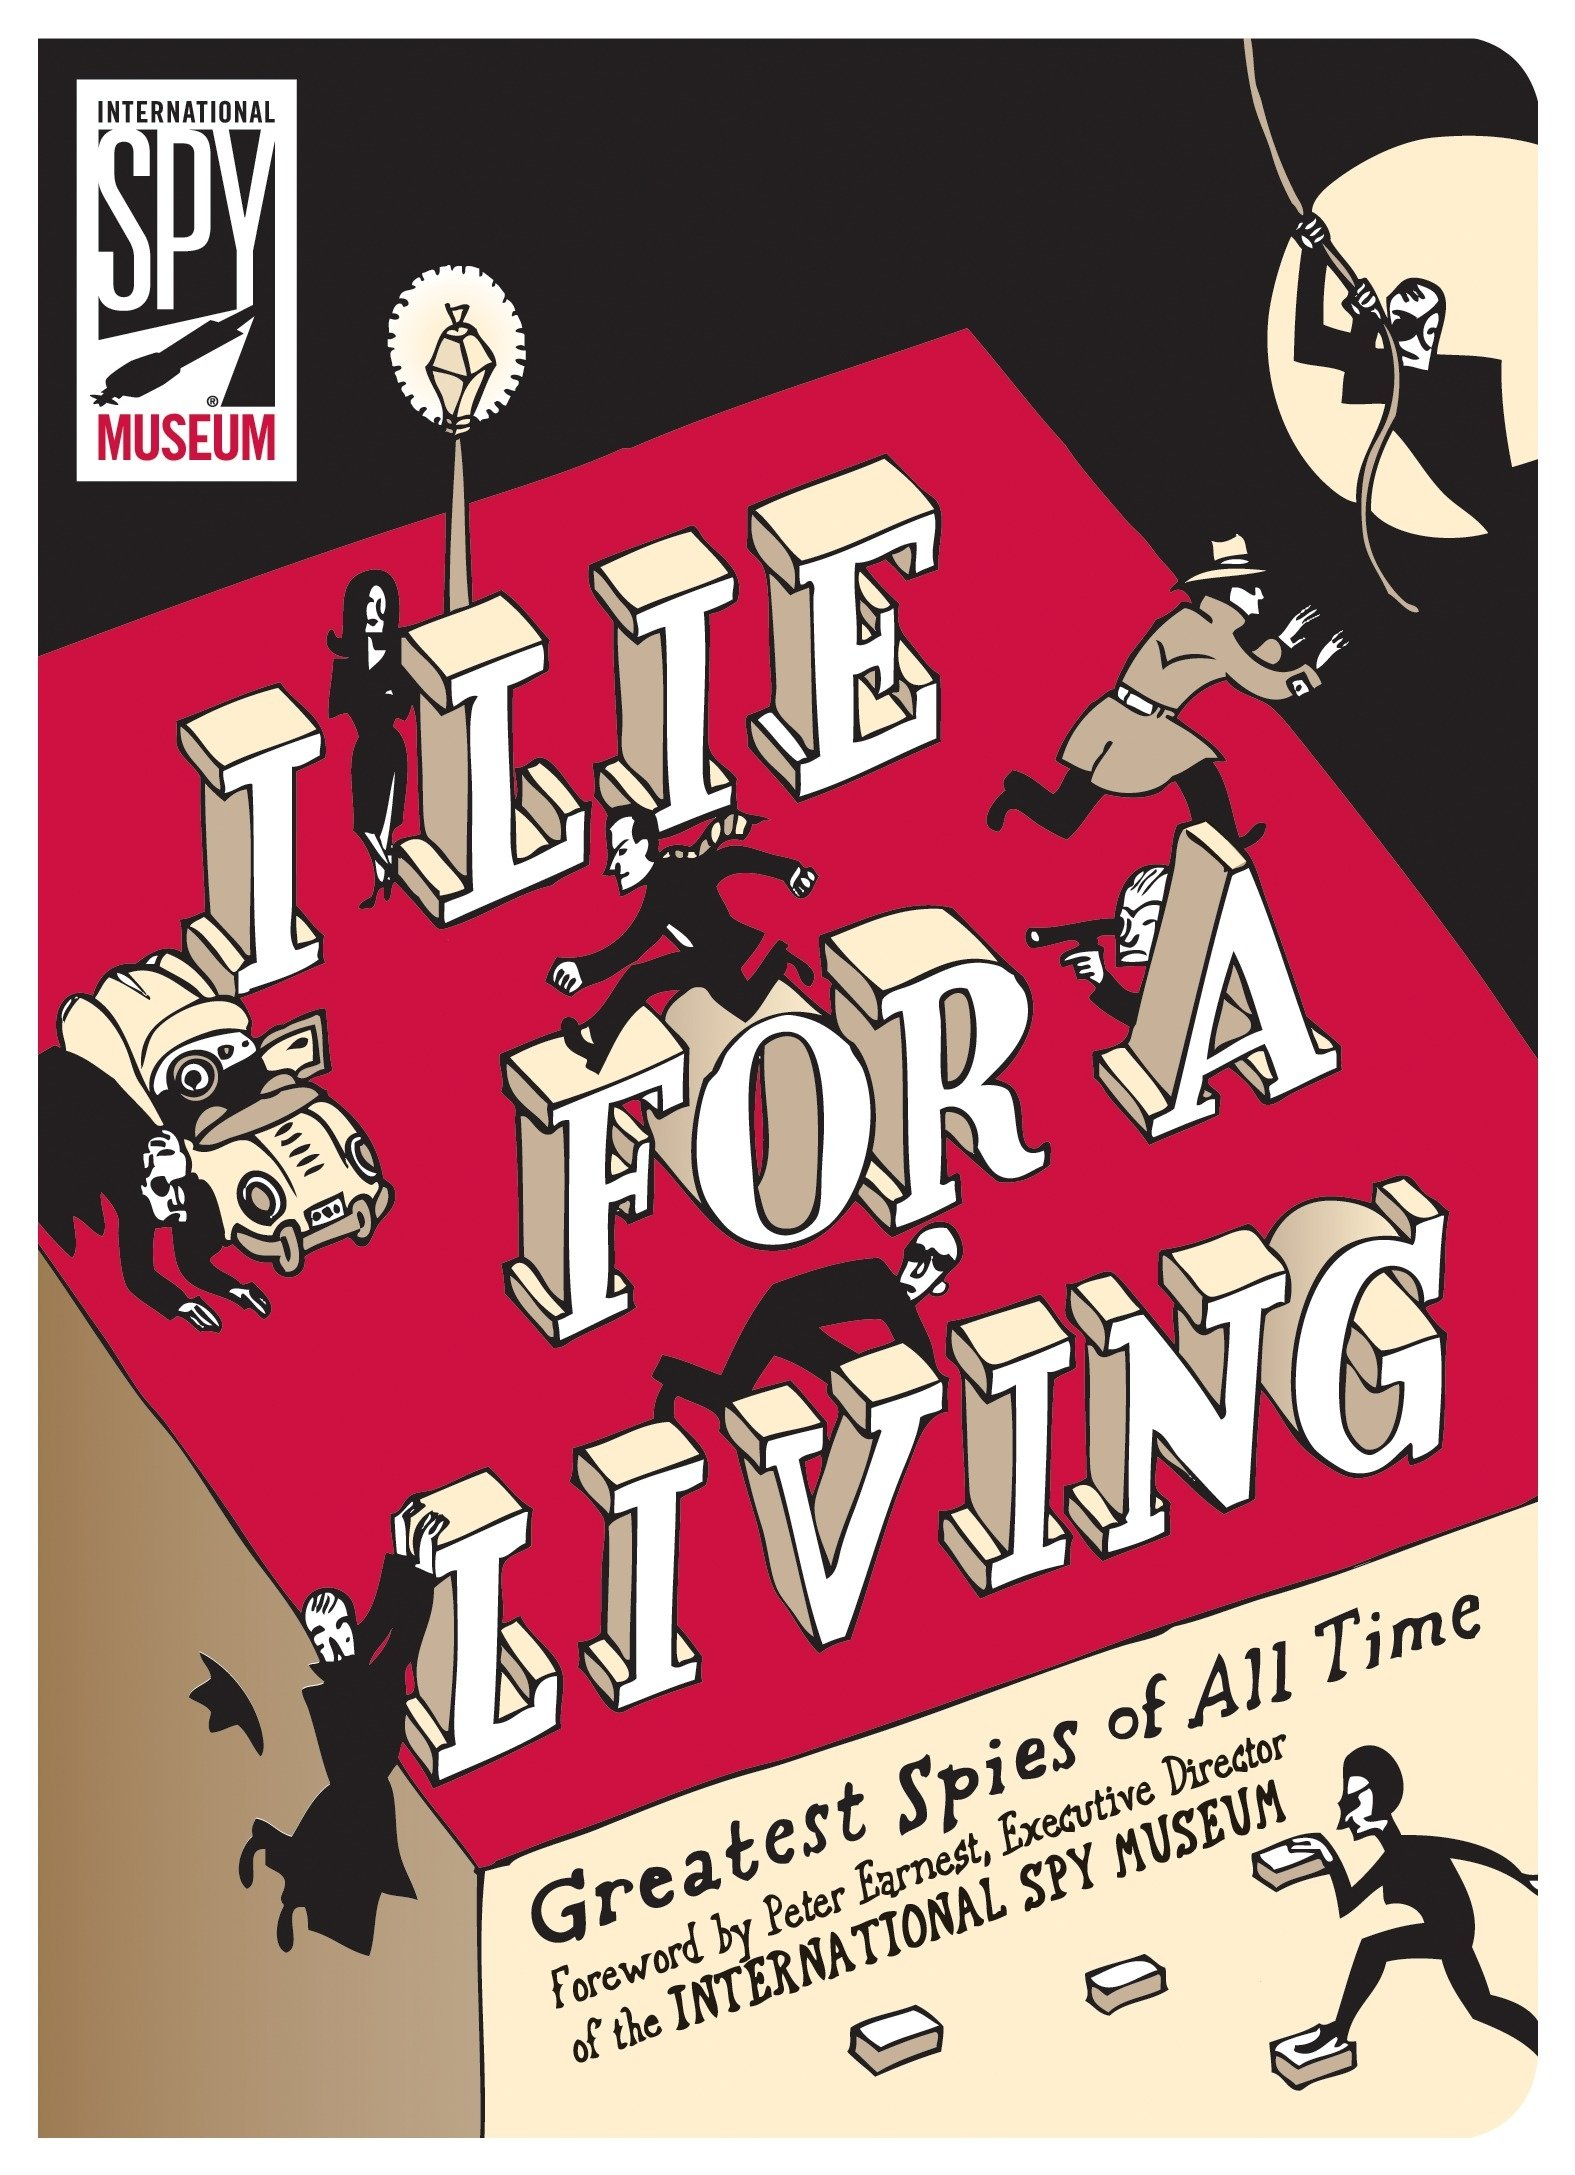 I Lie for a Living: Greatest Spies of All Time (International Spy Museum)